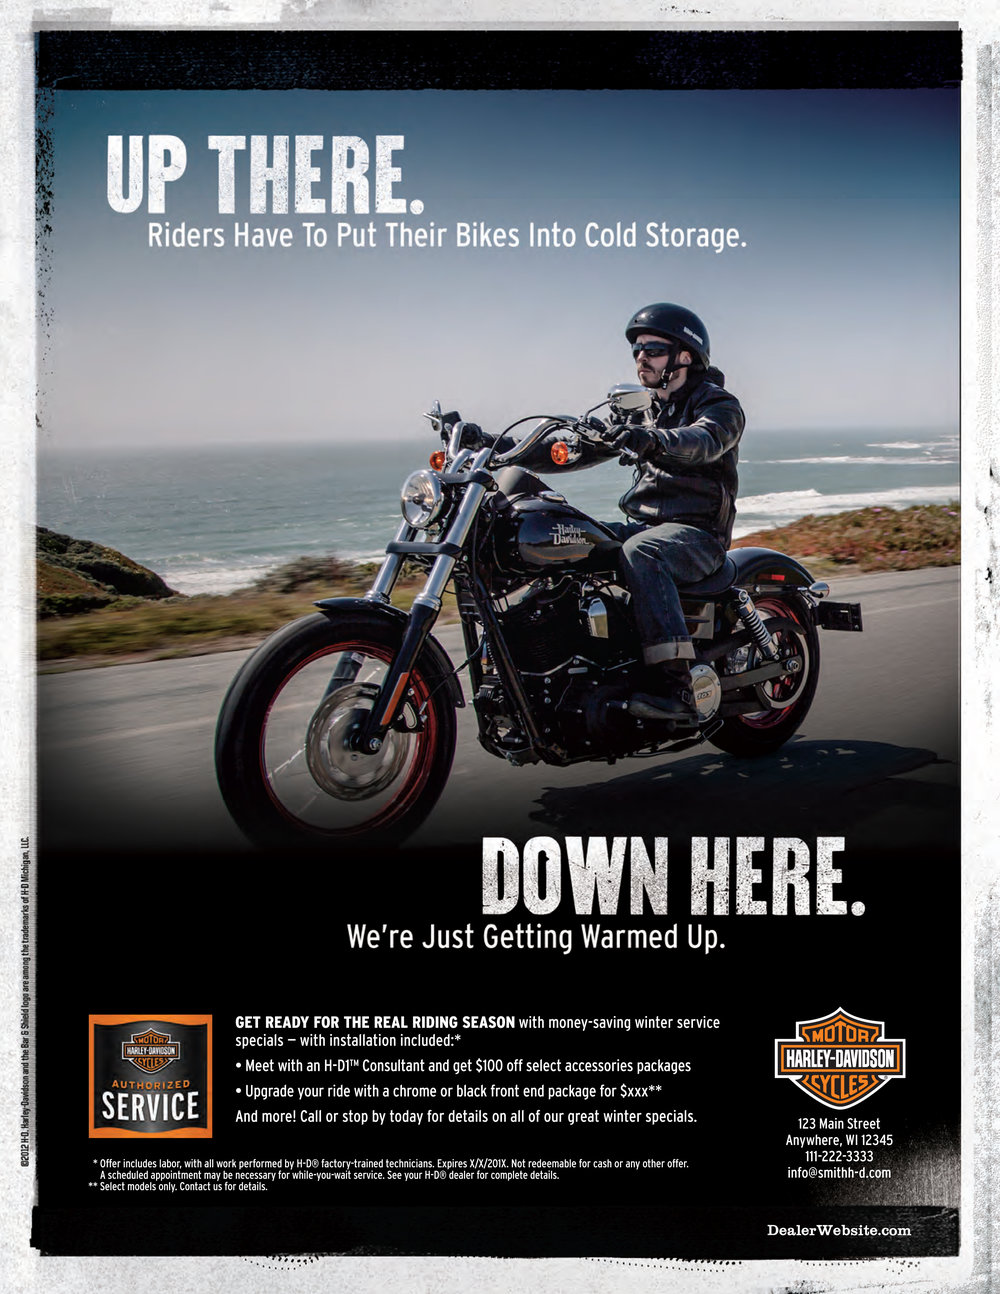 HARLEY-DAVIDSON   Design and production for service campaigns that included ads, hang tags, postcards & banner ads.